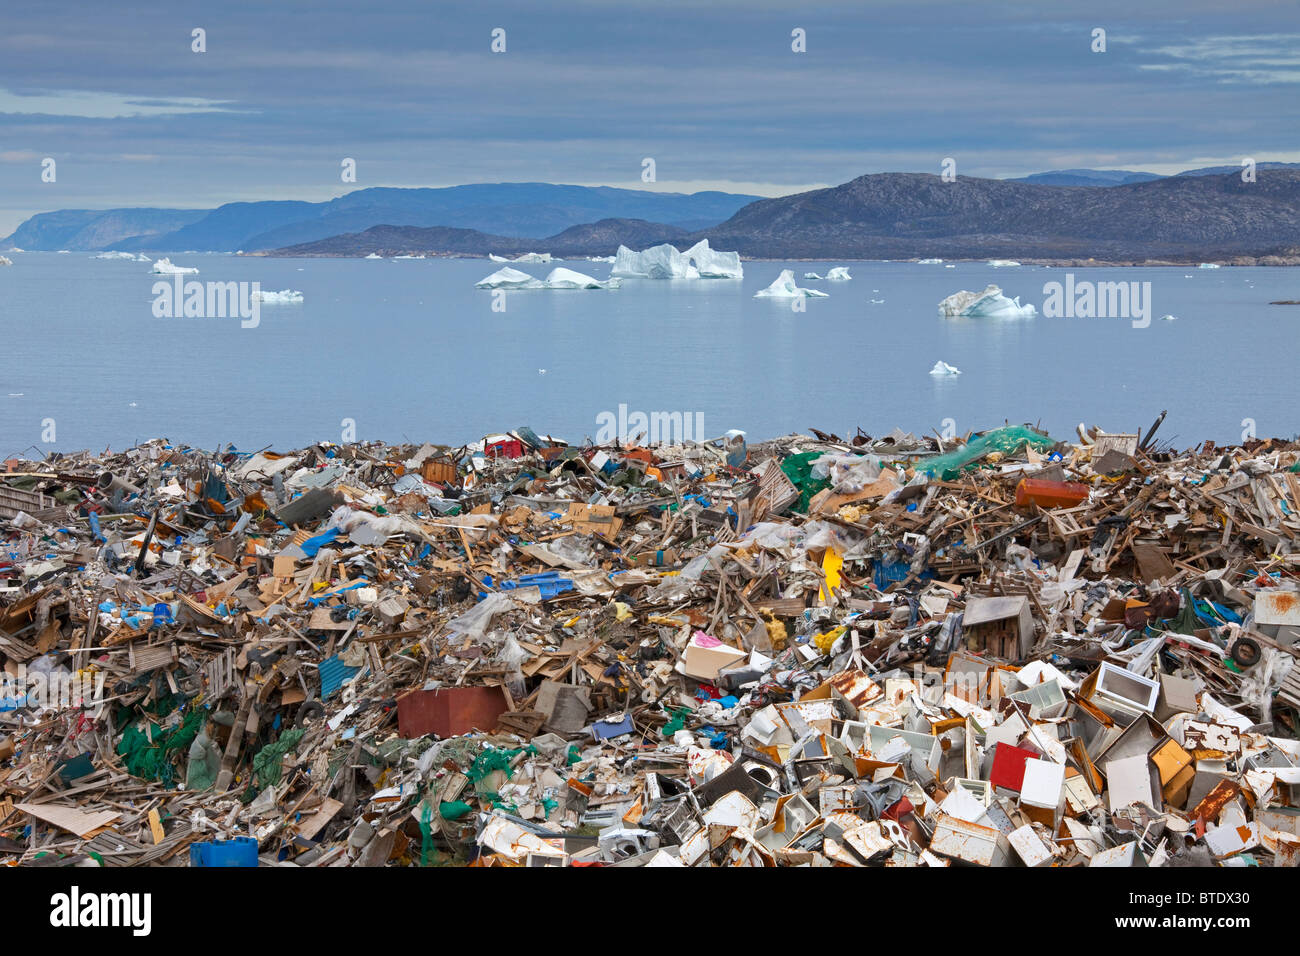 Rubbish at garbage dump and icebergs at Ilulissat / Jakobshavn, Disko-Bay, Greenland - Stock Image